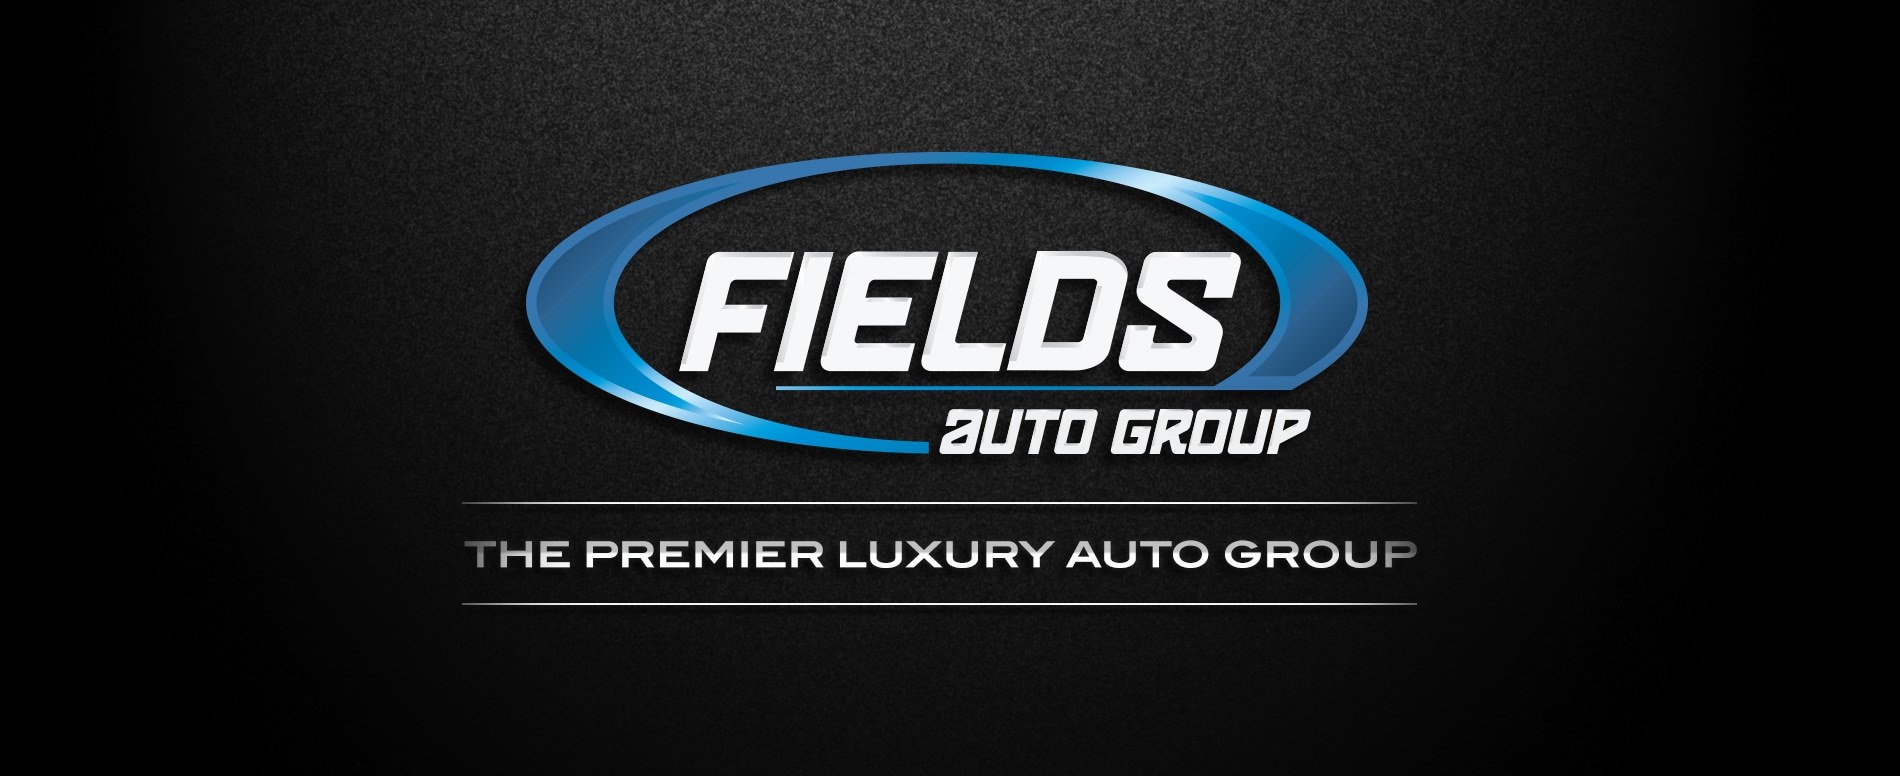 Dodge Dealer Orlando >> Fields Auto Group | New INFINITI, Volkswagen, Rolls-Royce, Volvo, Lexus, Dodge, Jeep, Collision ...